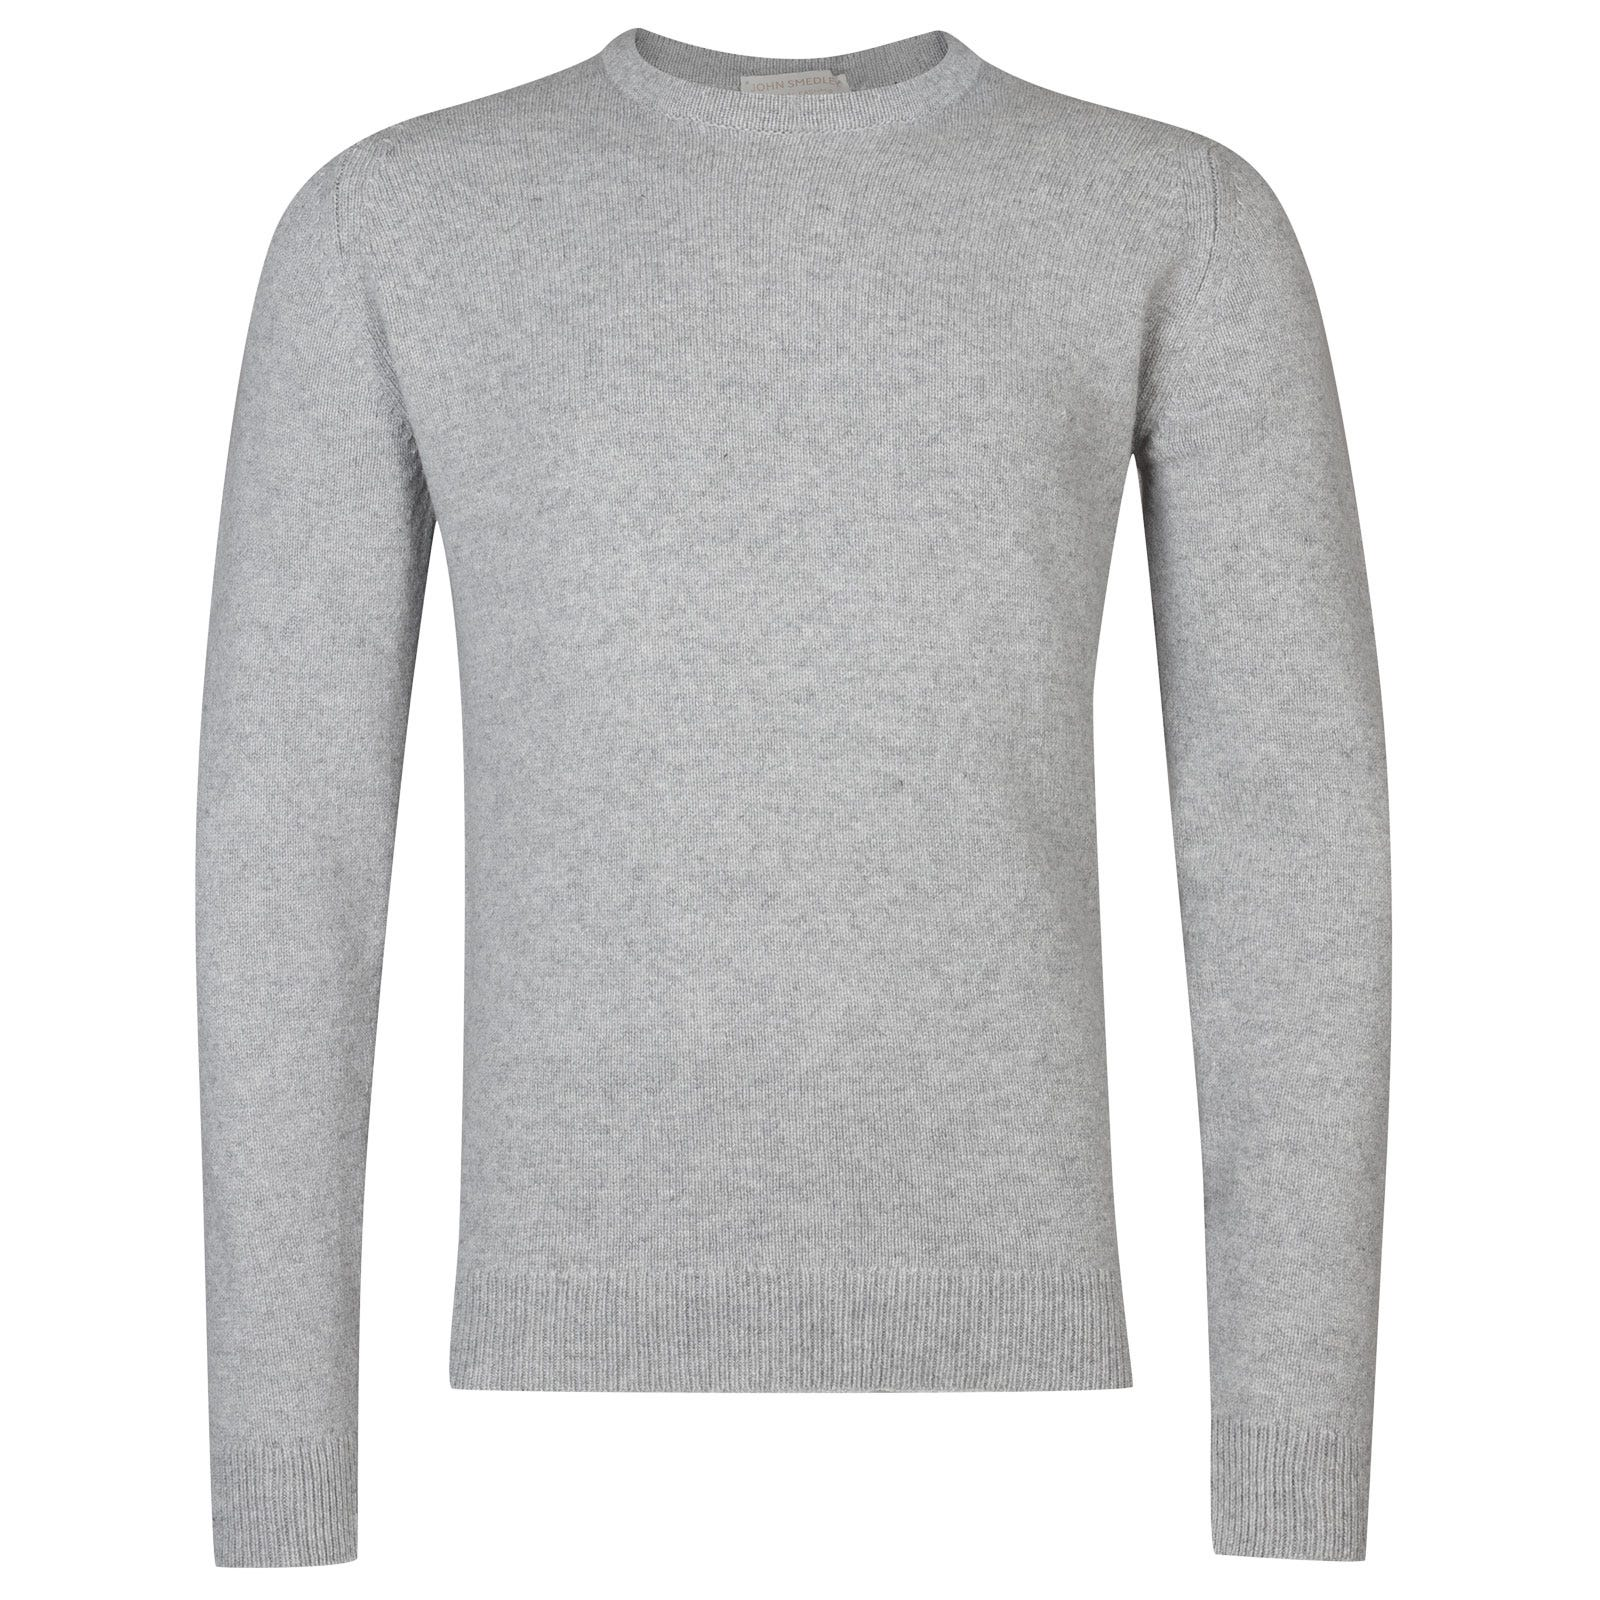 John Smedley Crowford Wool and Cashmere Pullover in Silver-S